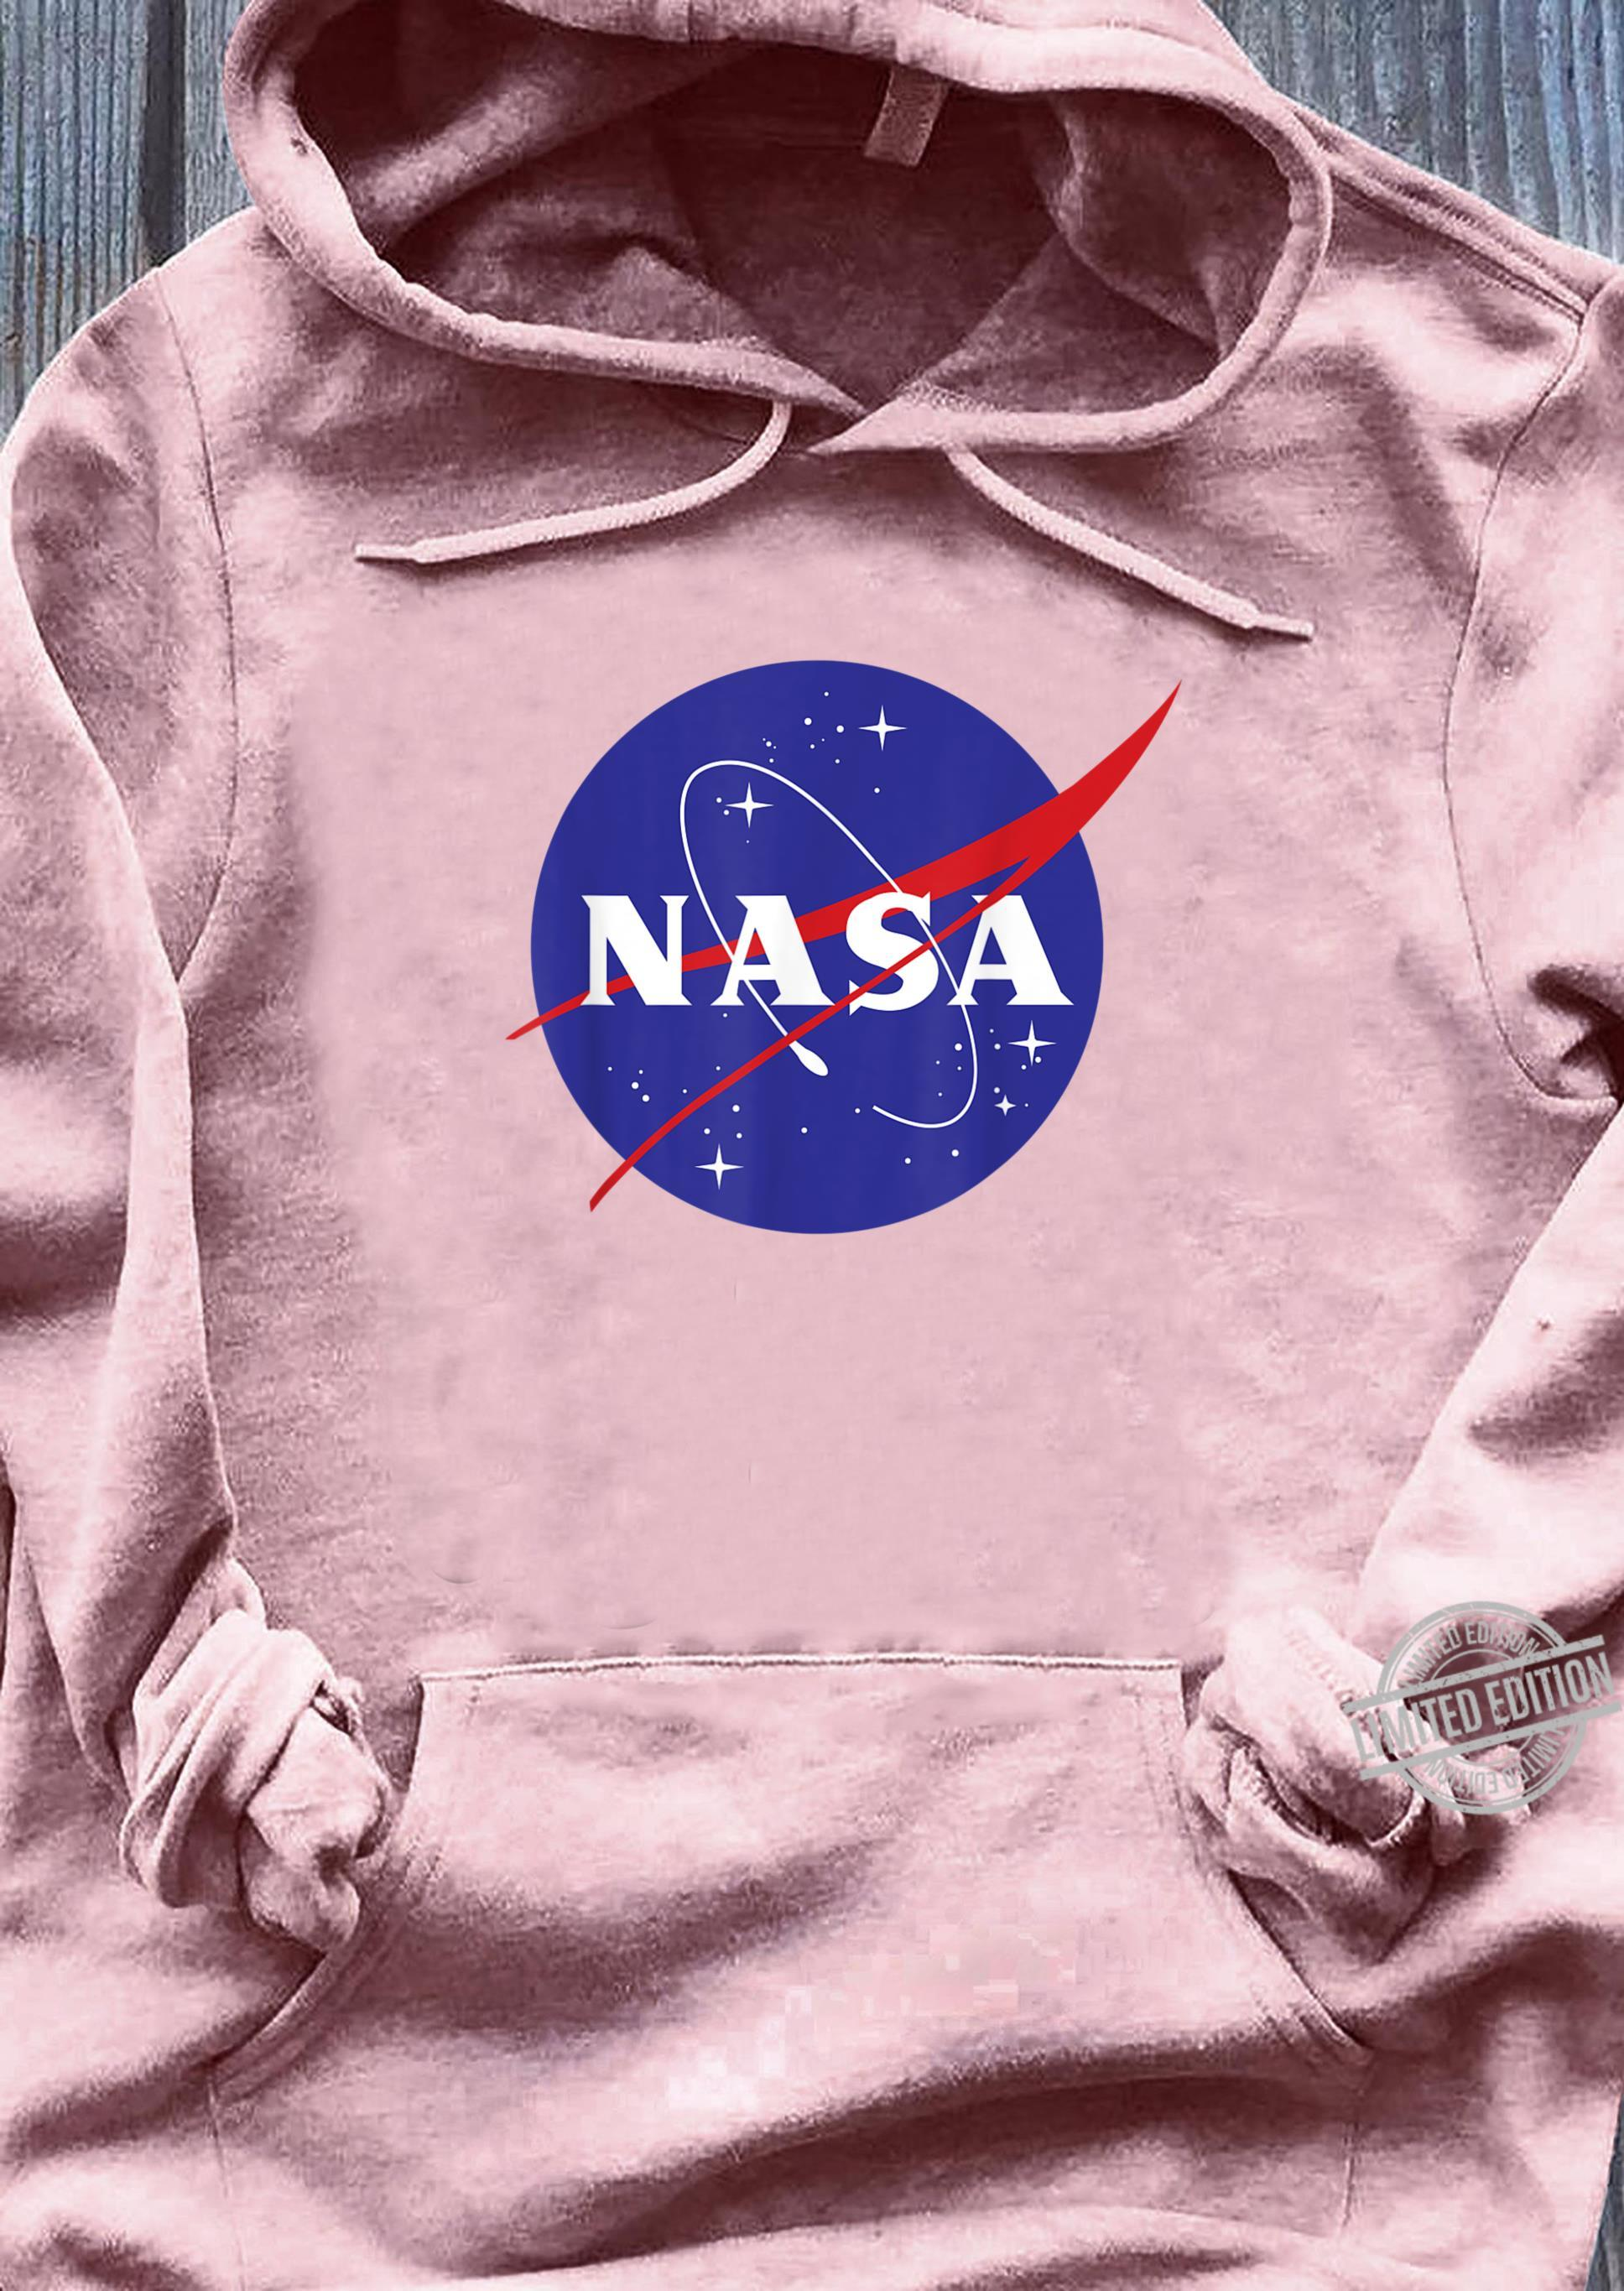 NASA Full Blue Logo C1 Shirt sweater